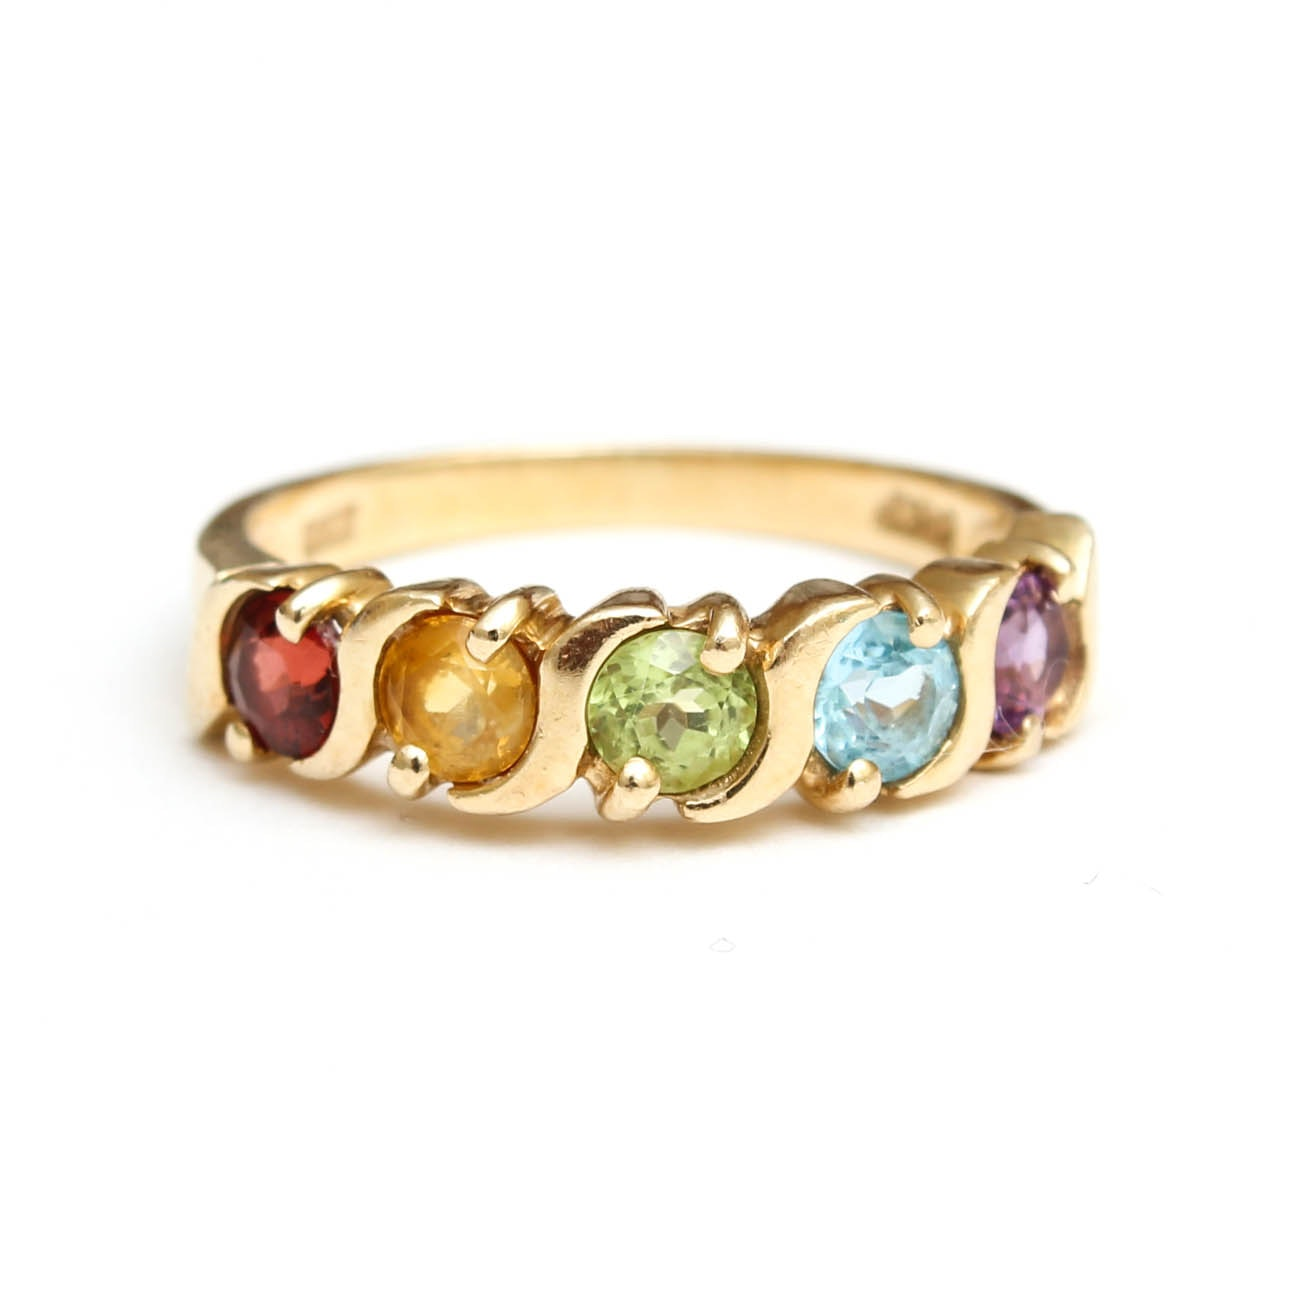 14K Yellow Gold Ring with Gemstones